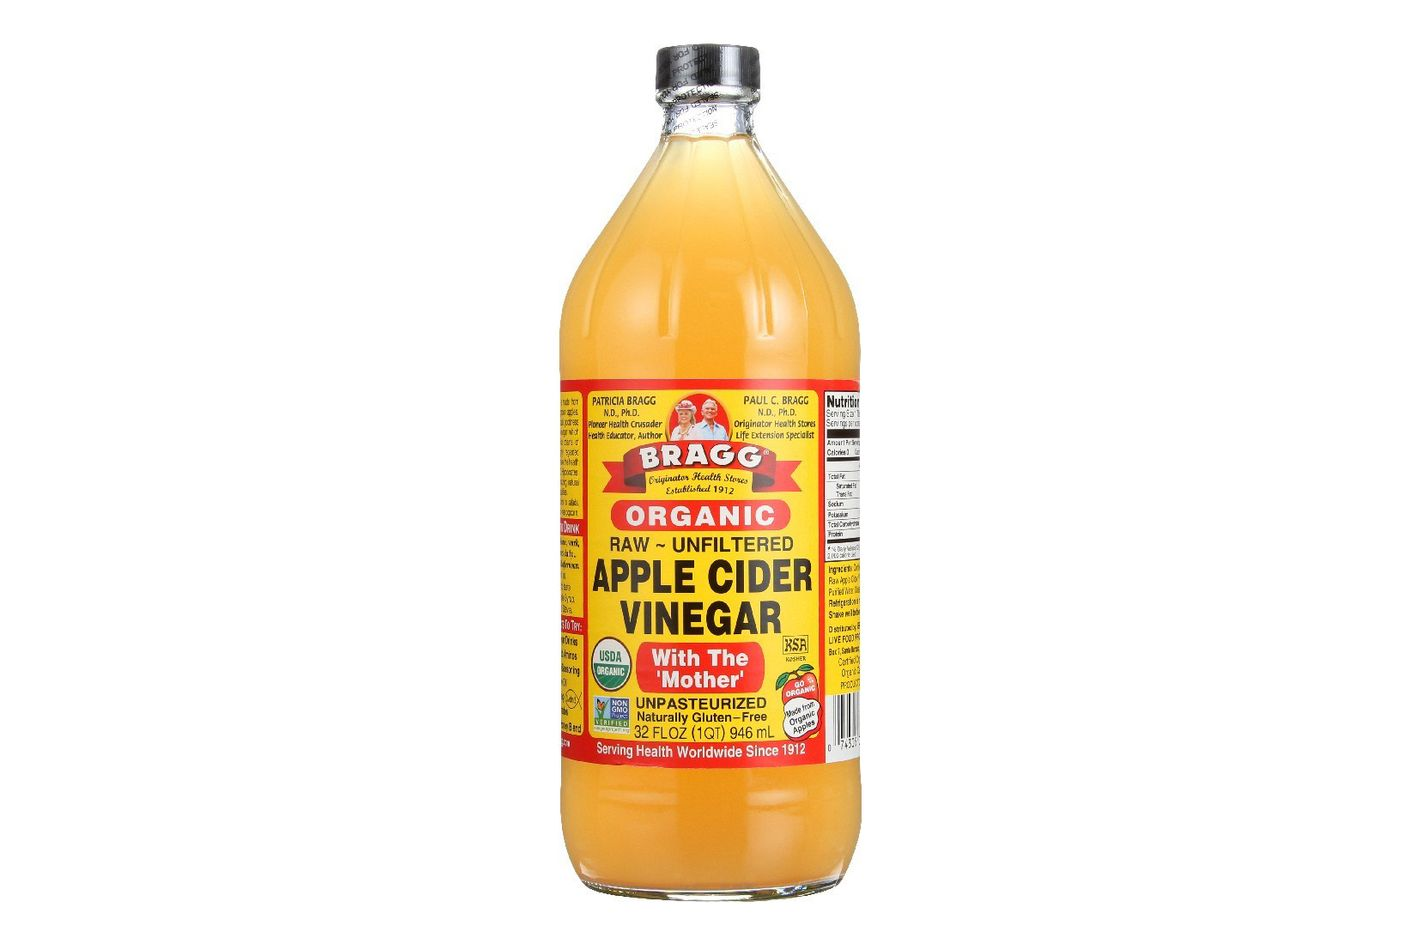 Bragg's Organic Apple Cider Vinegar (Raw and Unfiltered), 32 oz.